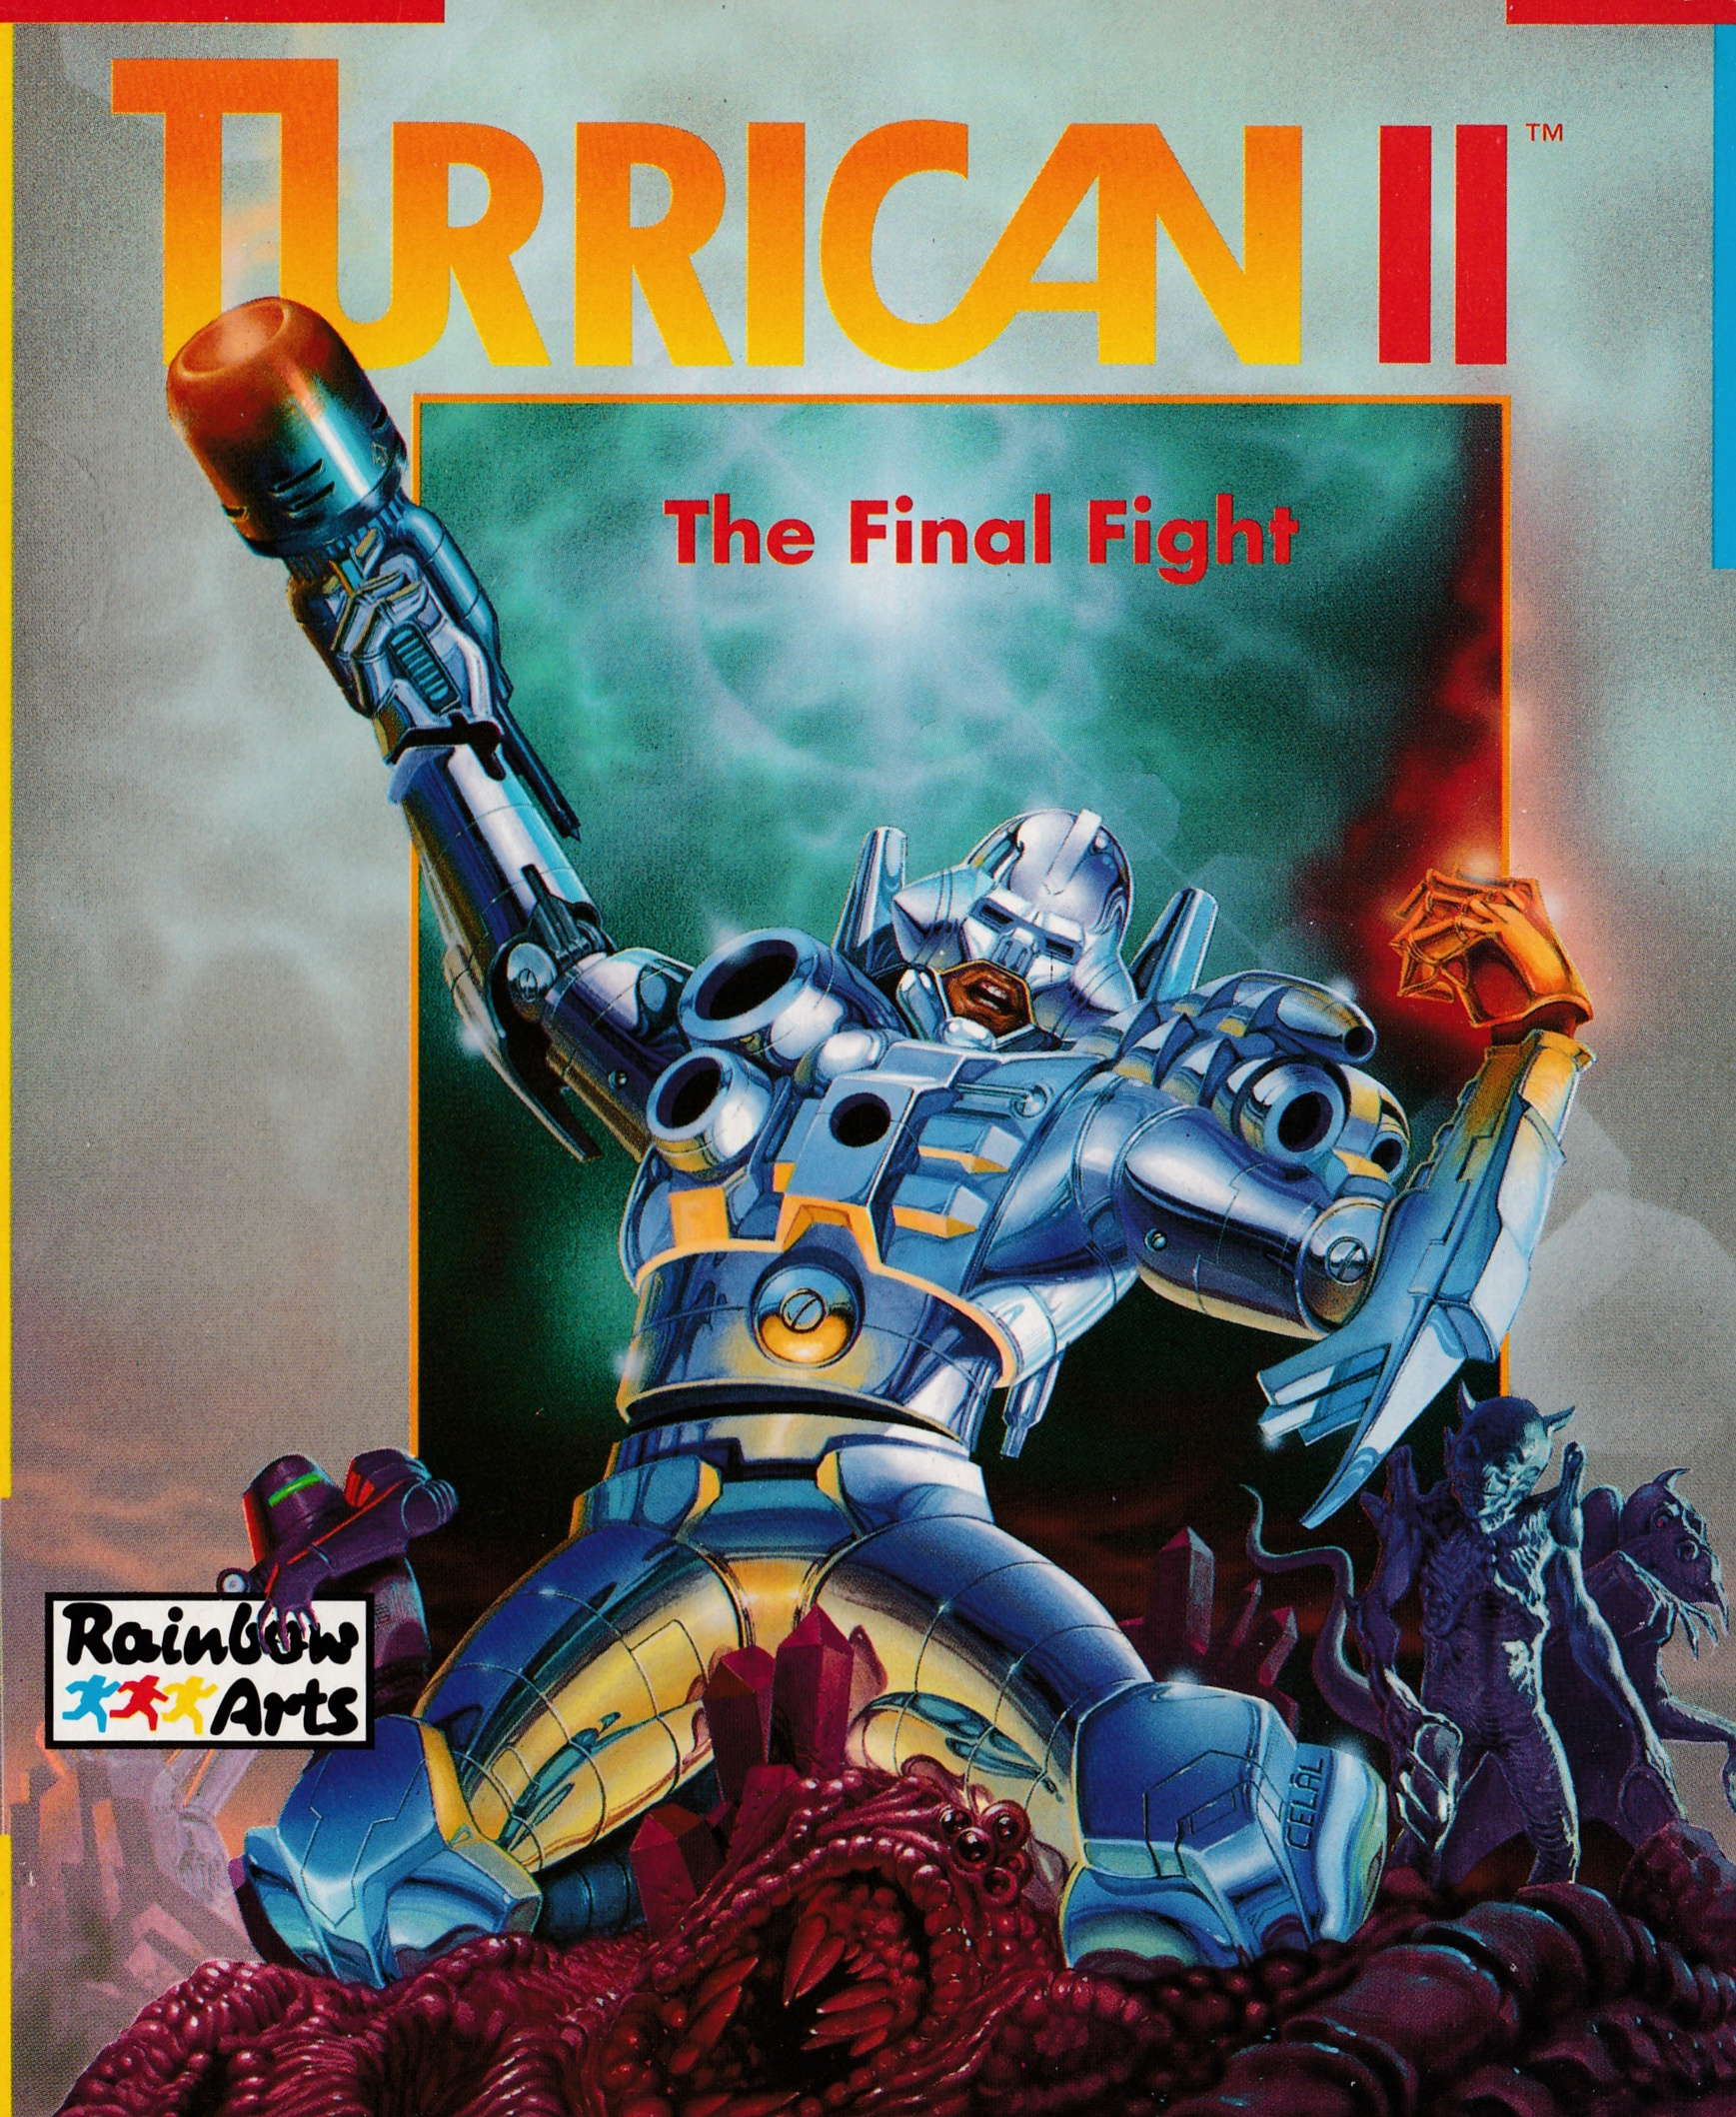 cover of the Amstrad CPC game Turrican II  by GameBase CPC